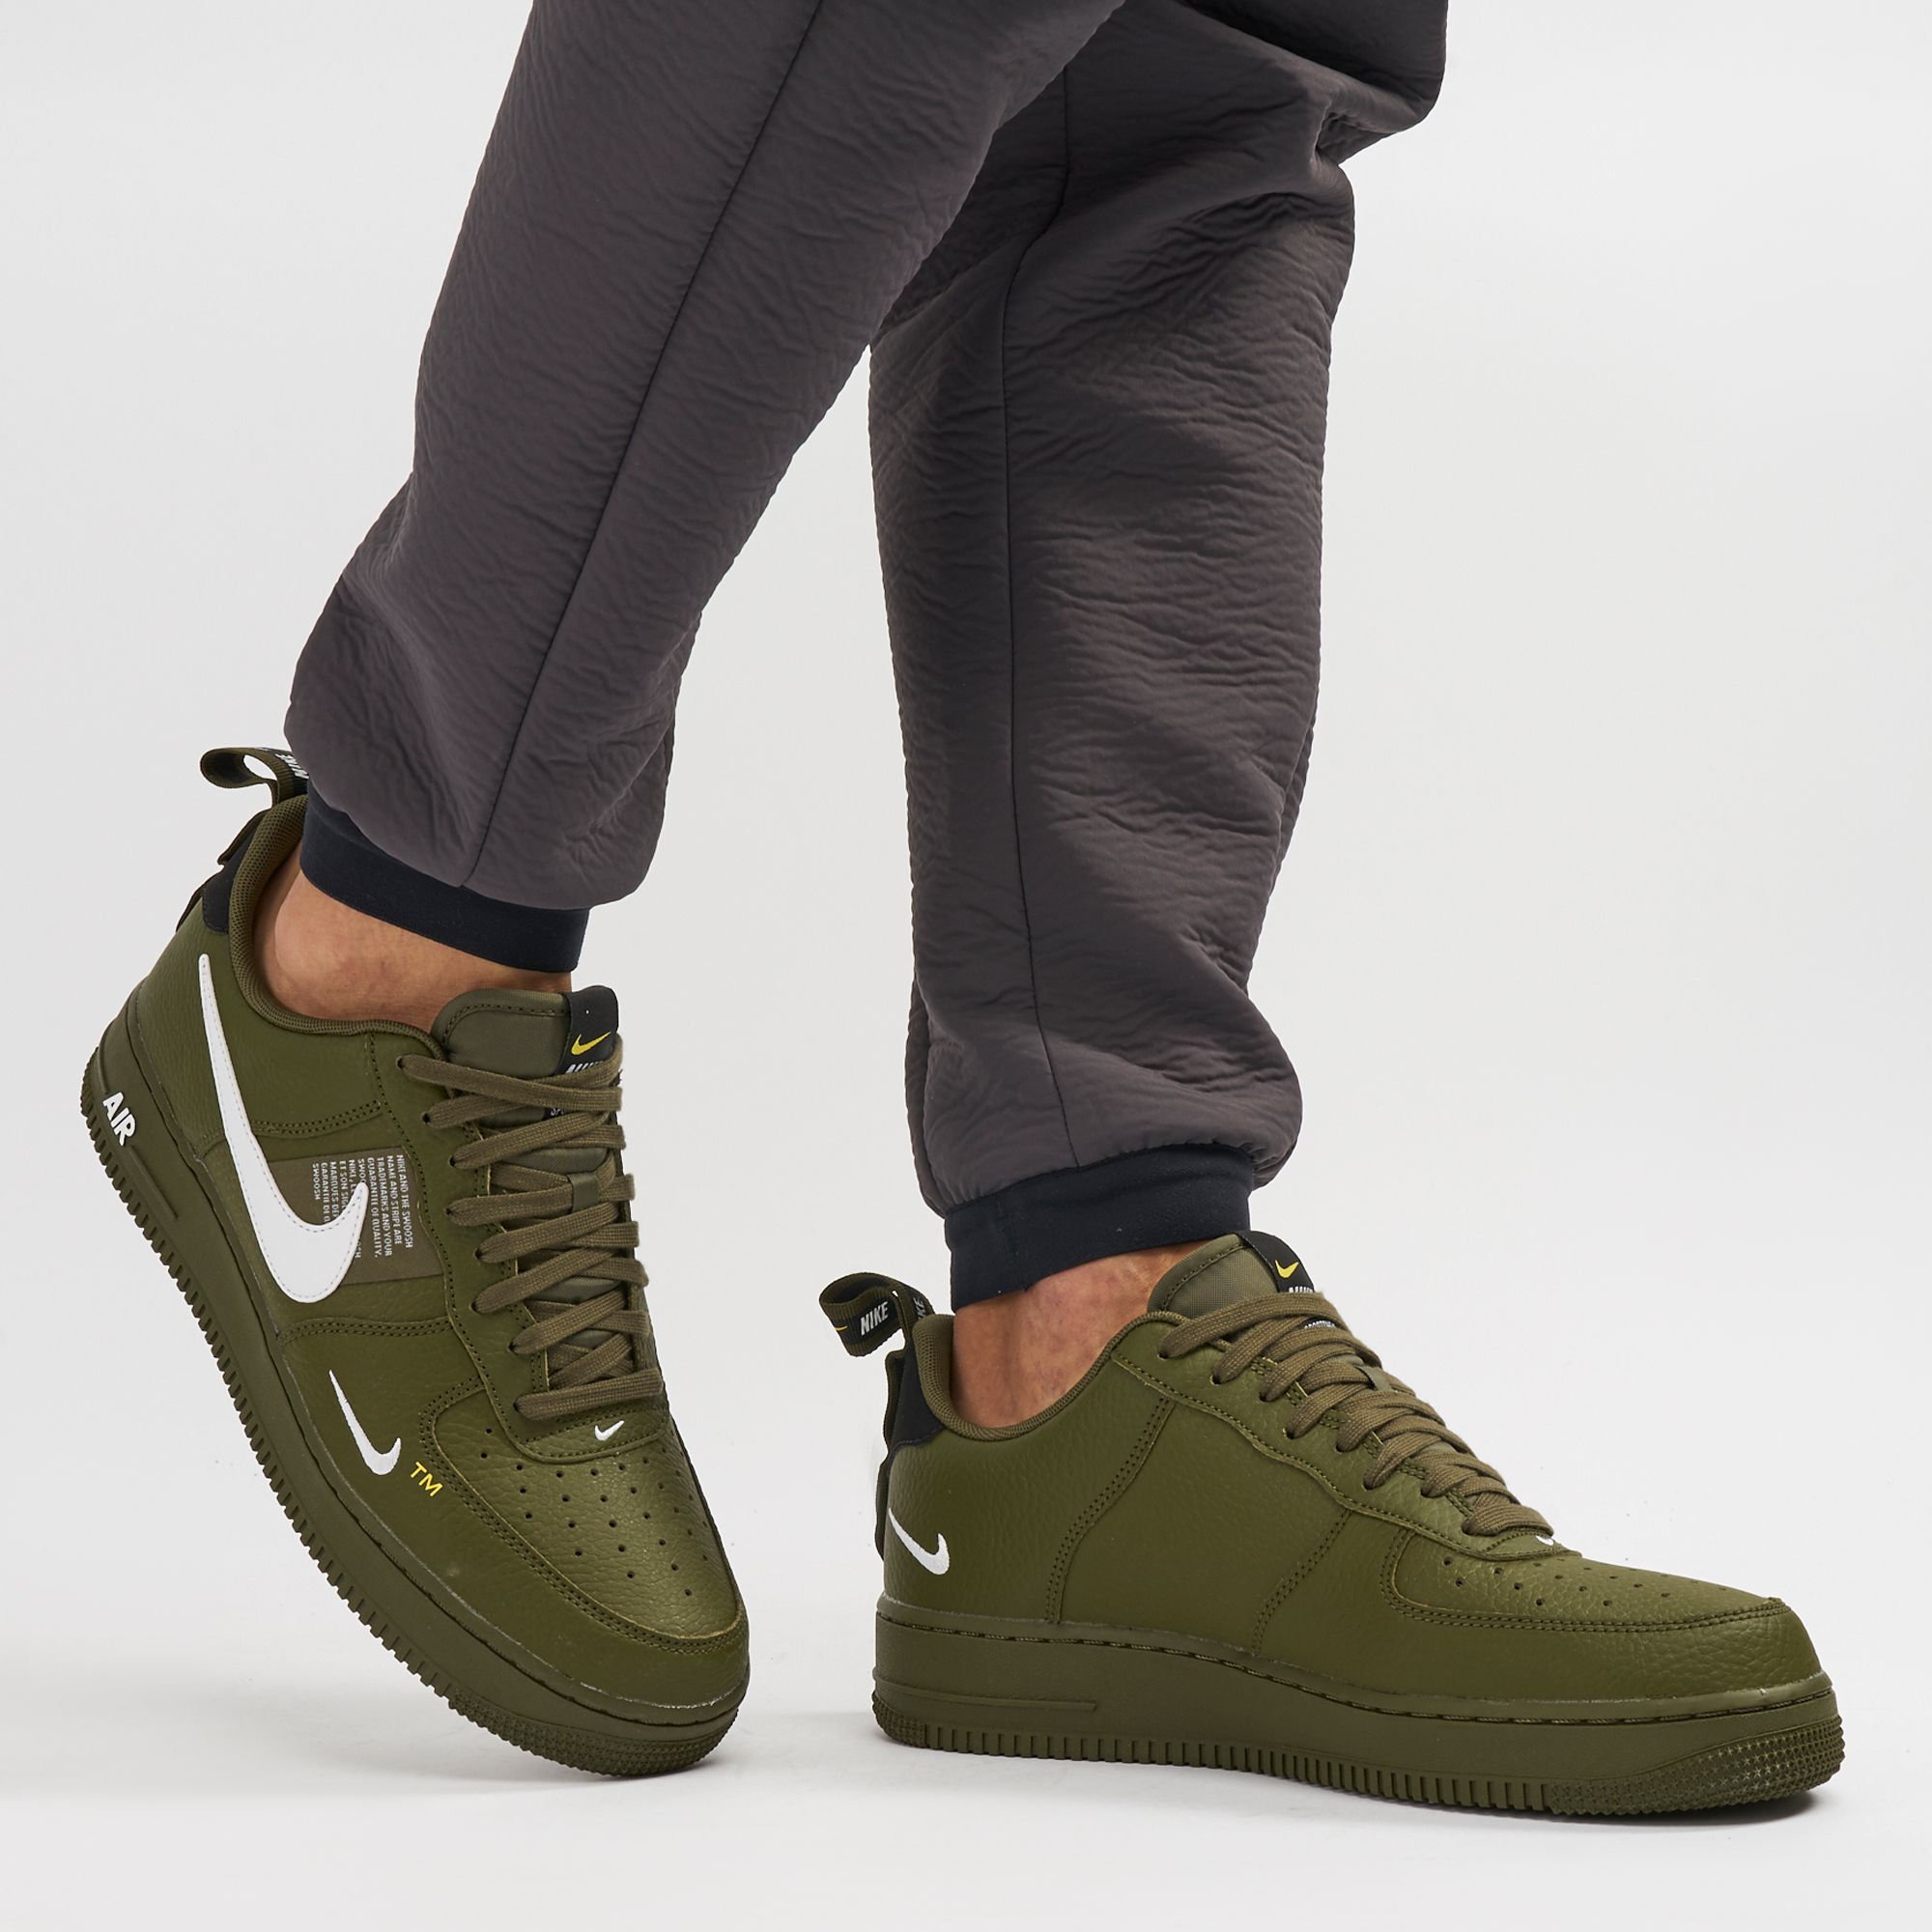 Nike Air Force 1 07 Lv8 Utility Shoe Sneakers Shoes Sports